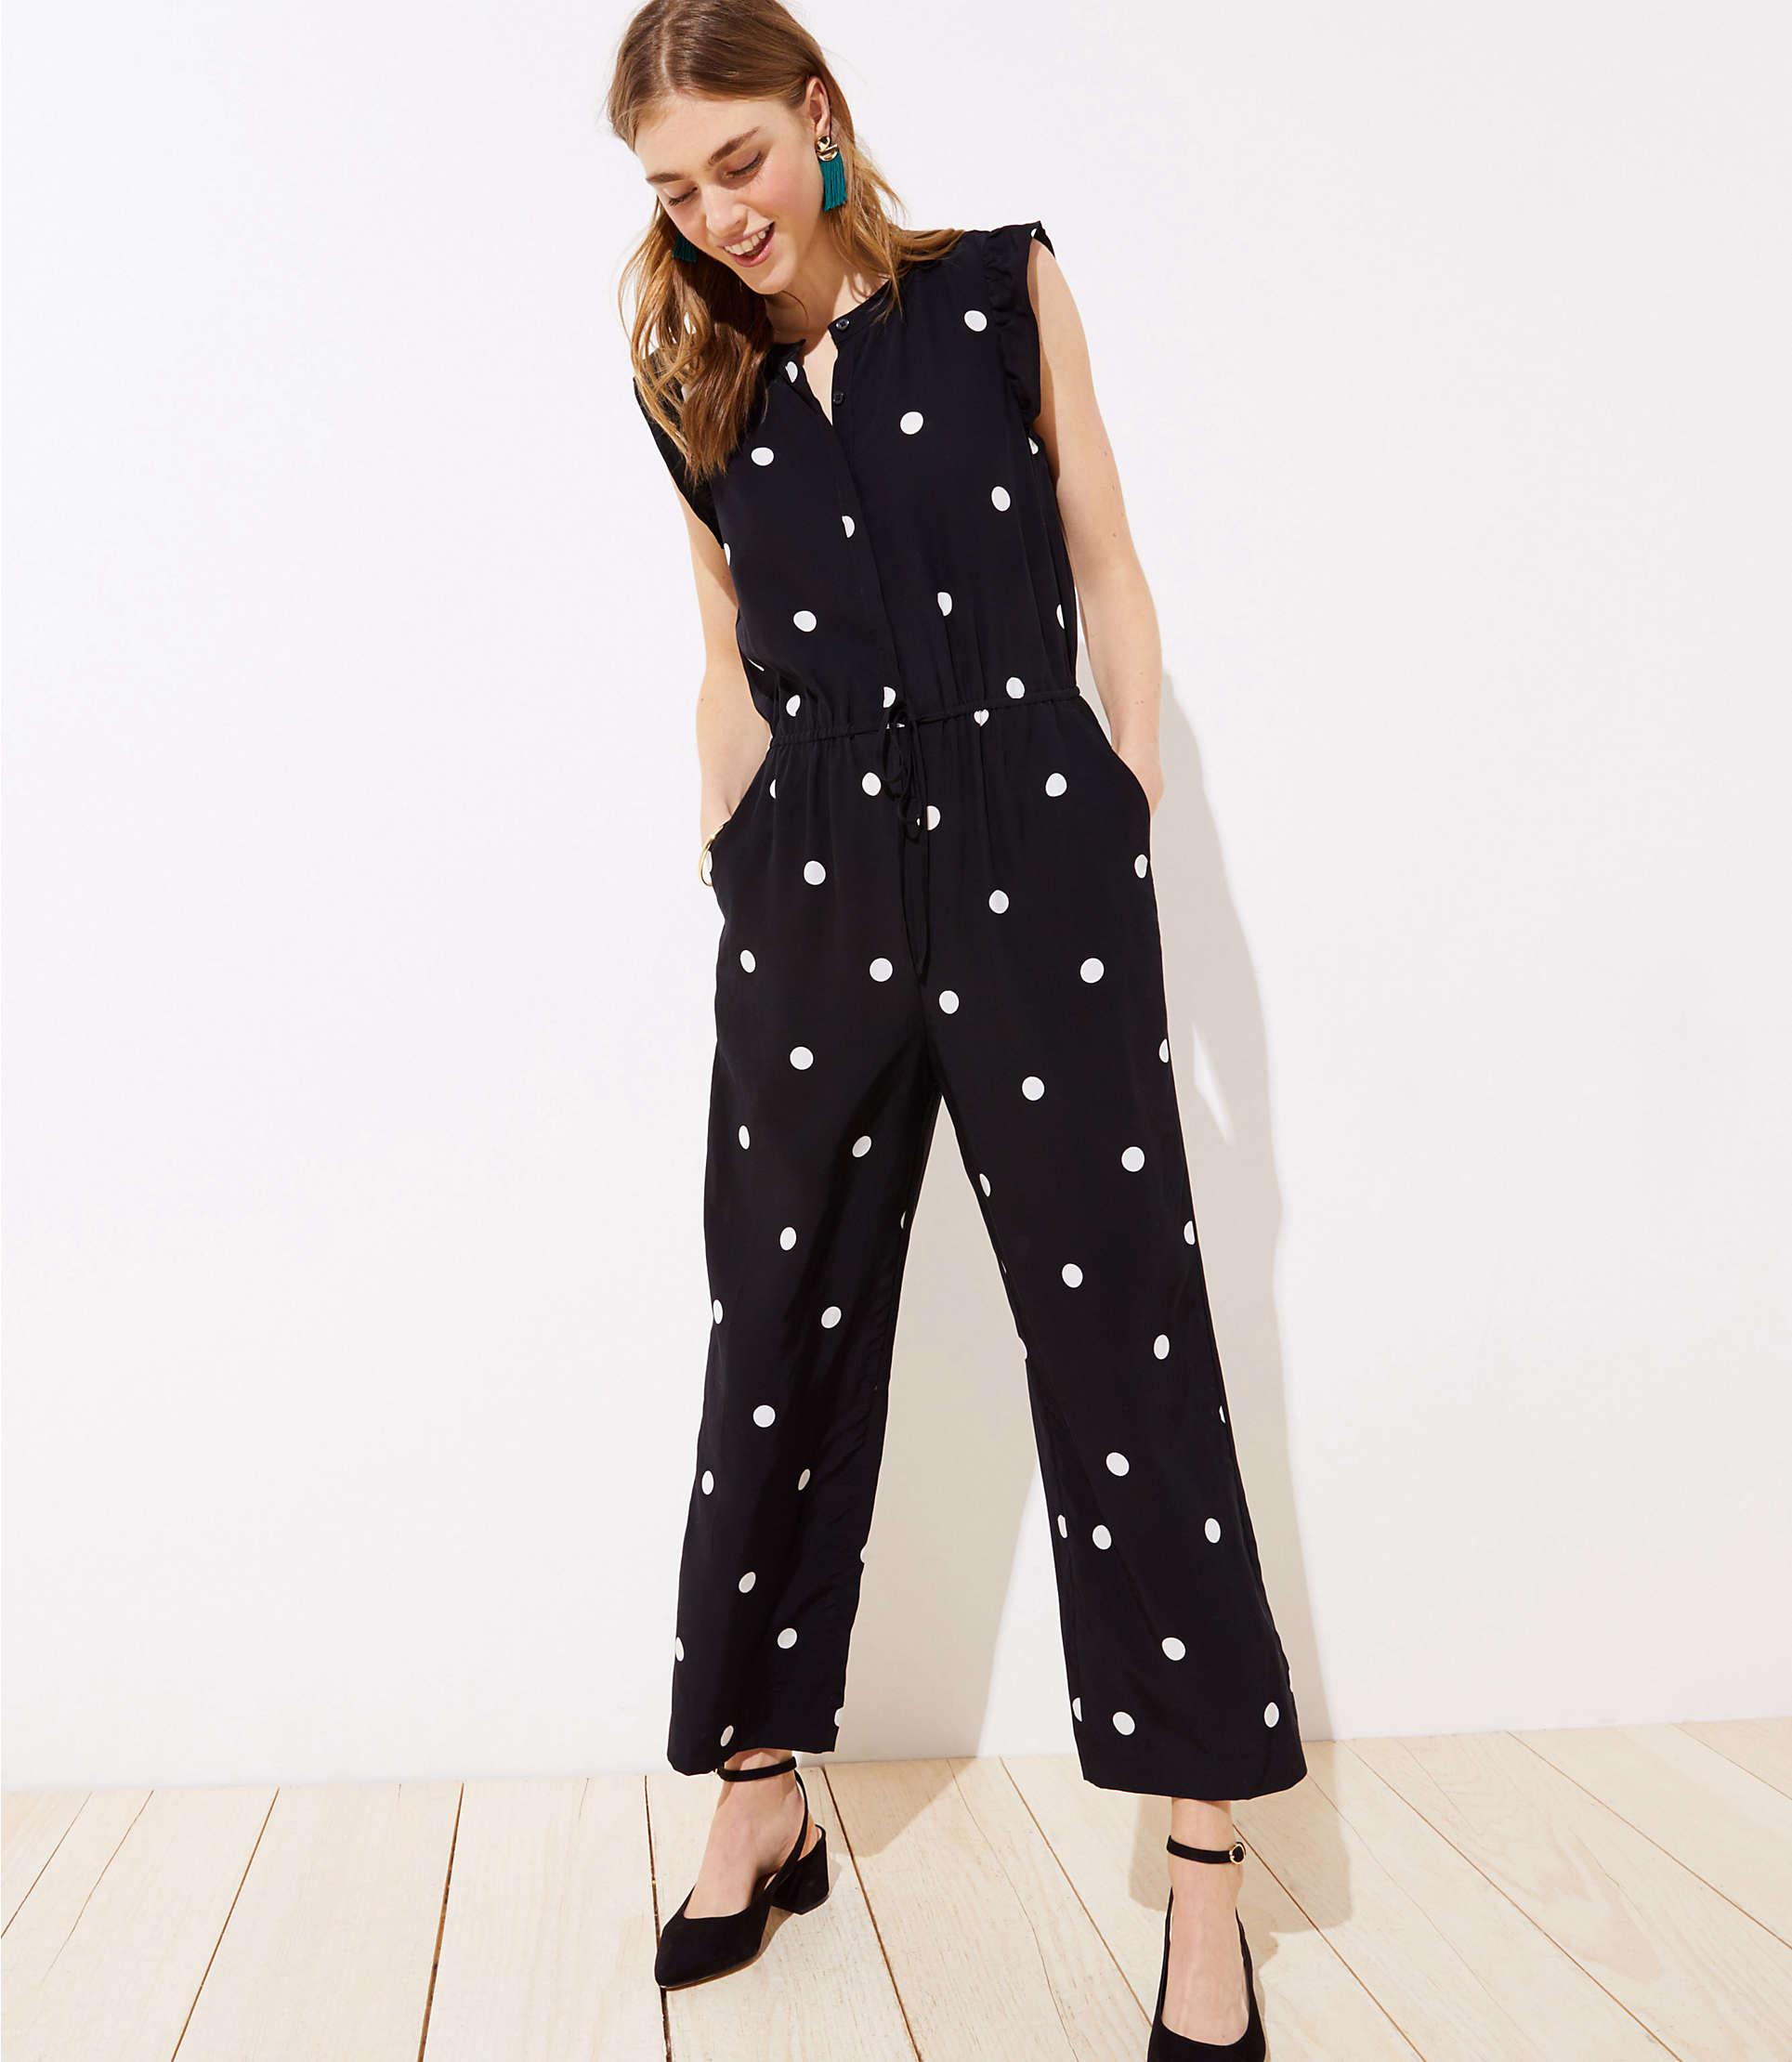 ce224361c481 Lyst - LOFT Dotted Flutter Drawstring Jumpsuit in Black - Save 31%